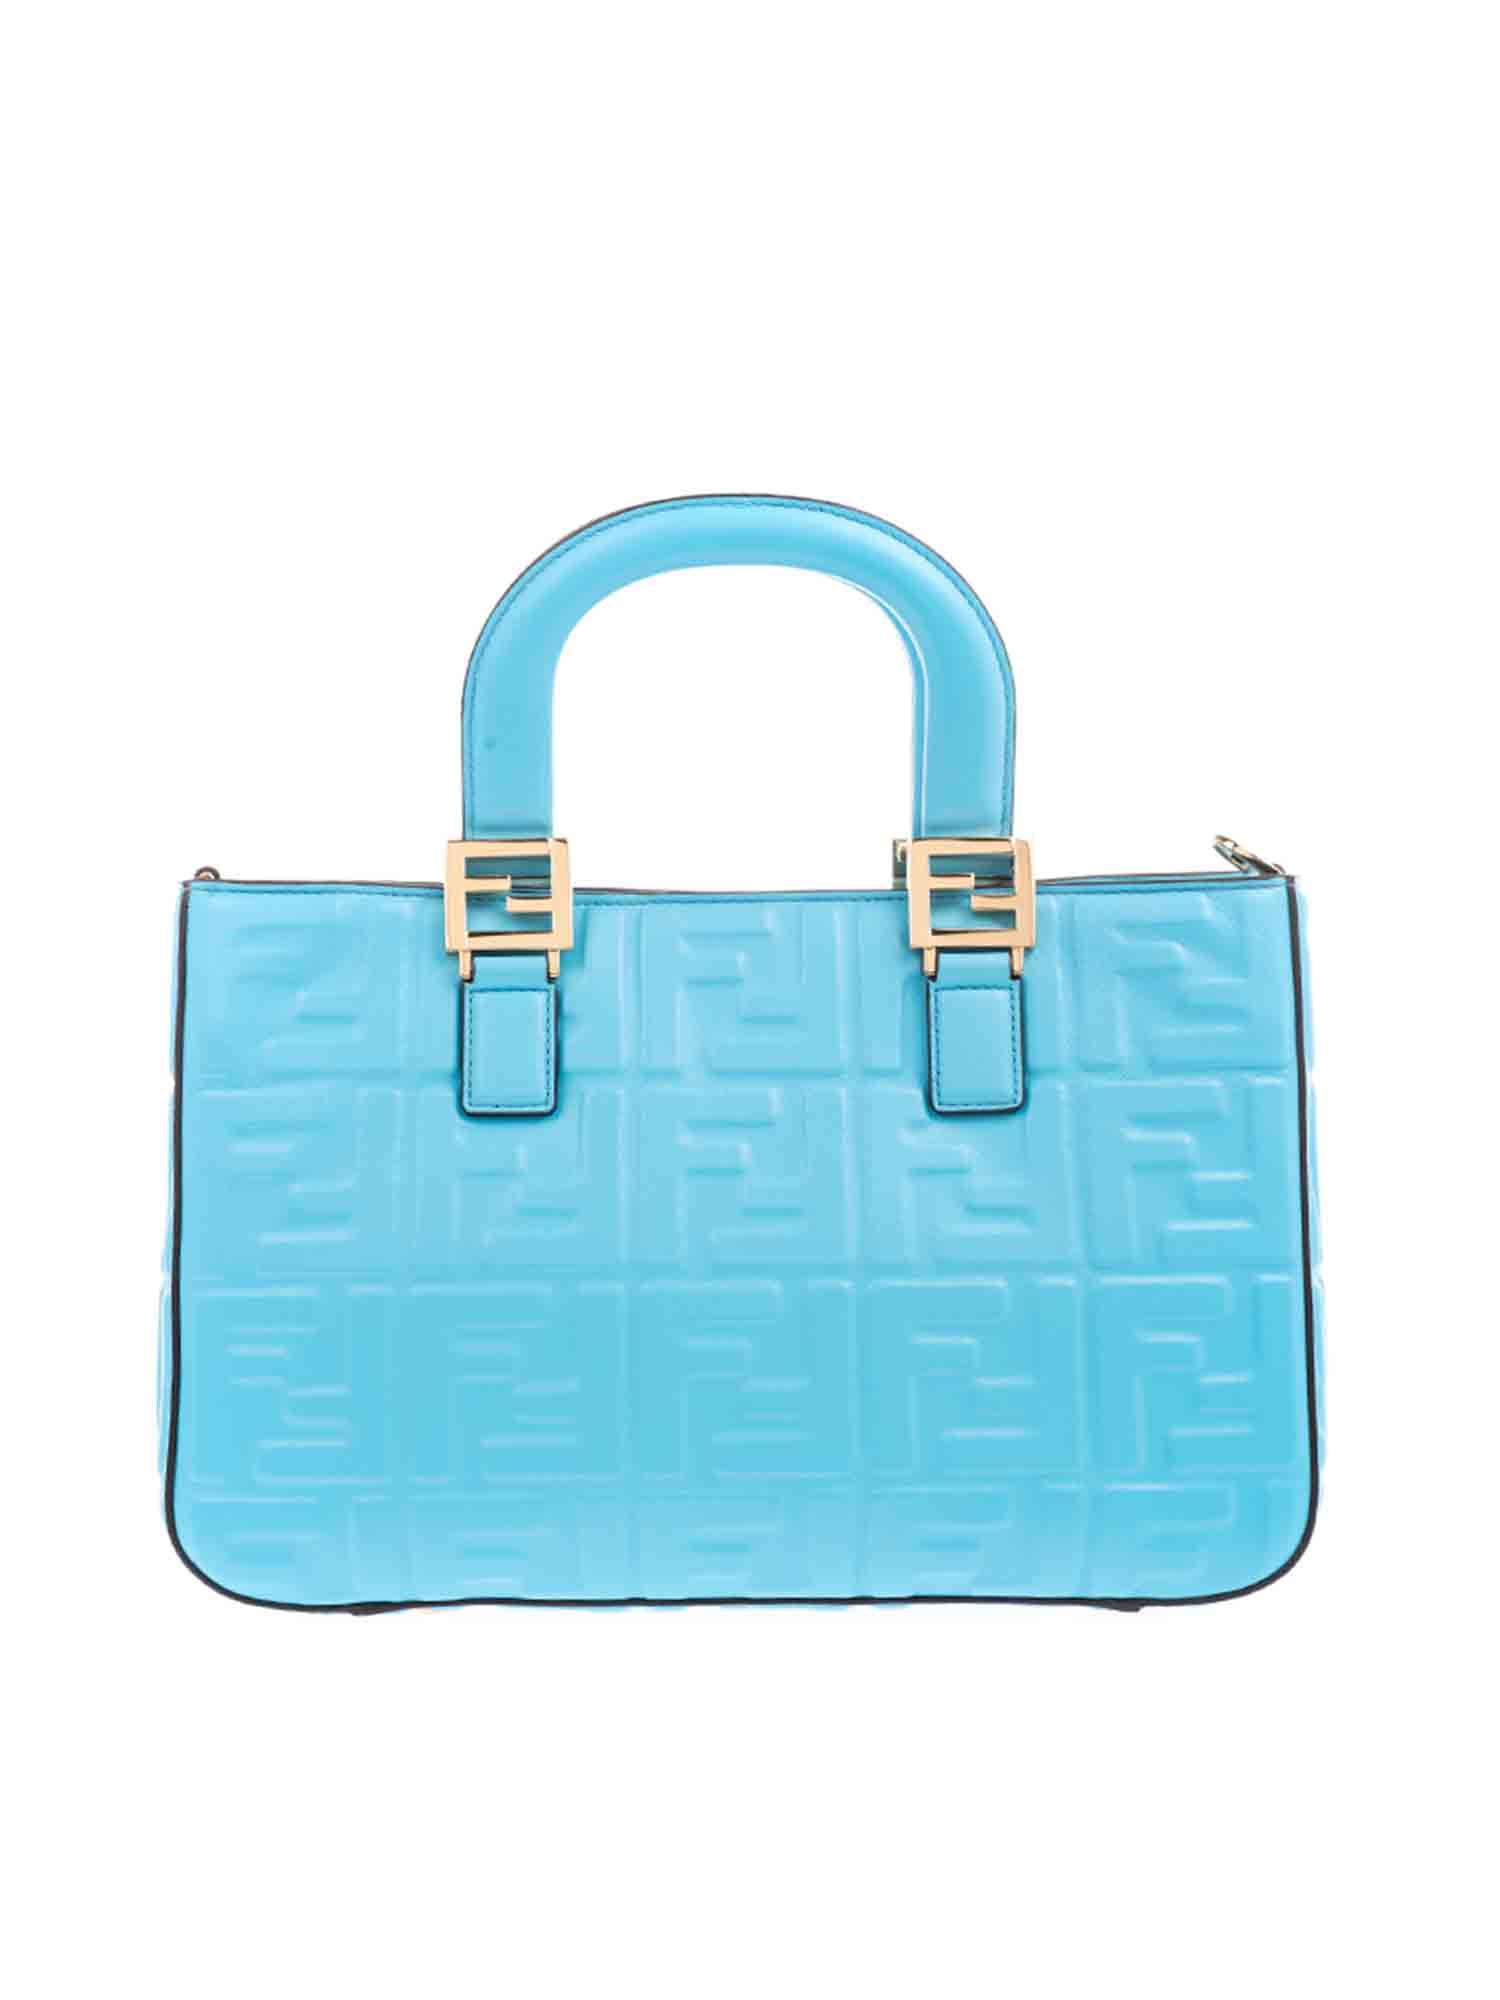 Fendi FF LOGO TEXTURED SMALL TOTE BAG IN TURQUOISE